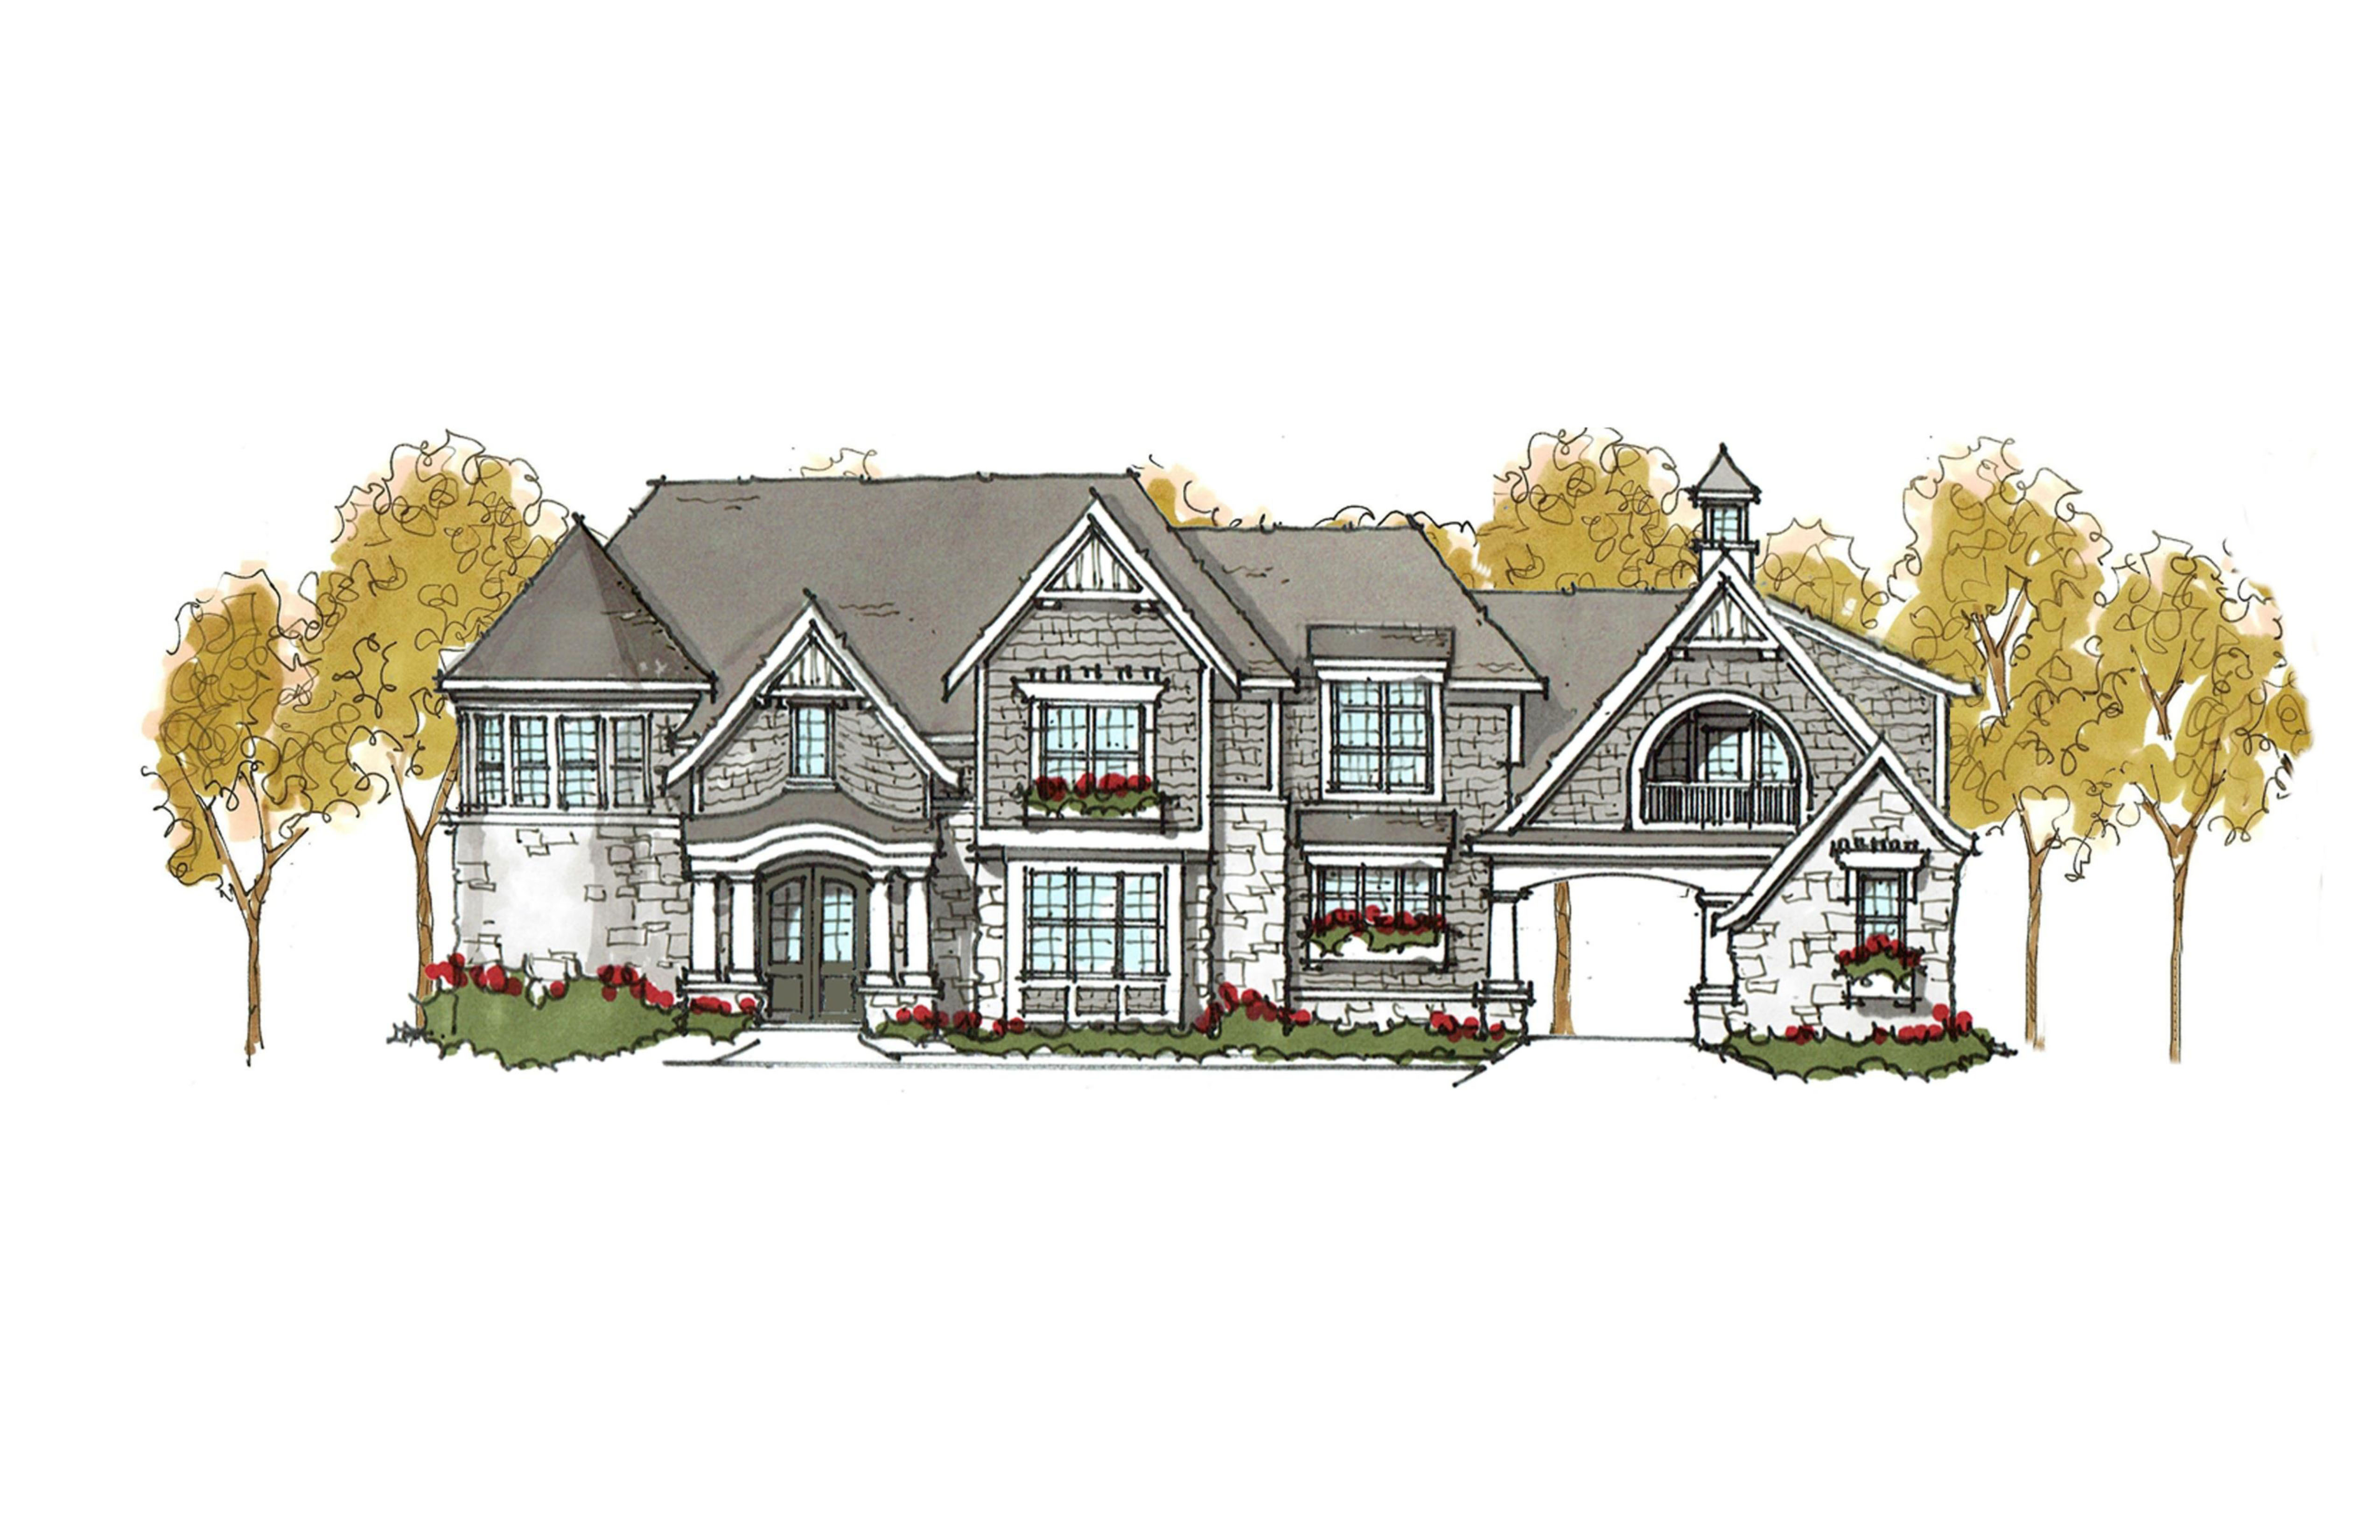 House plans with garage set back for House plan set